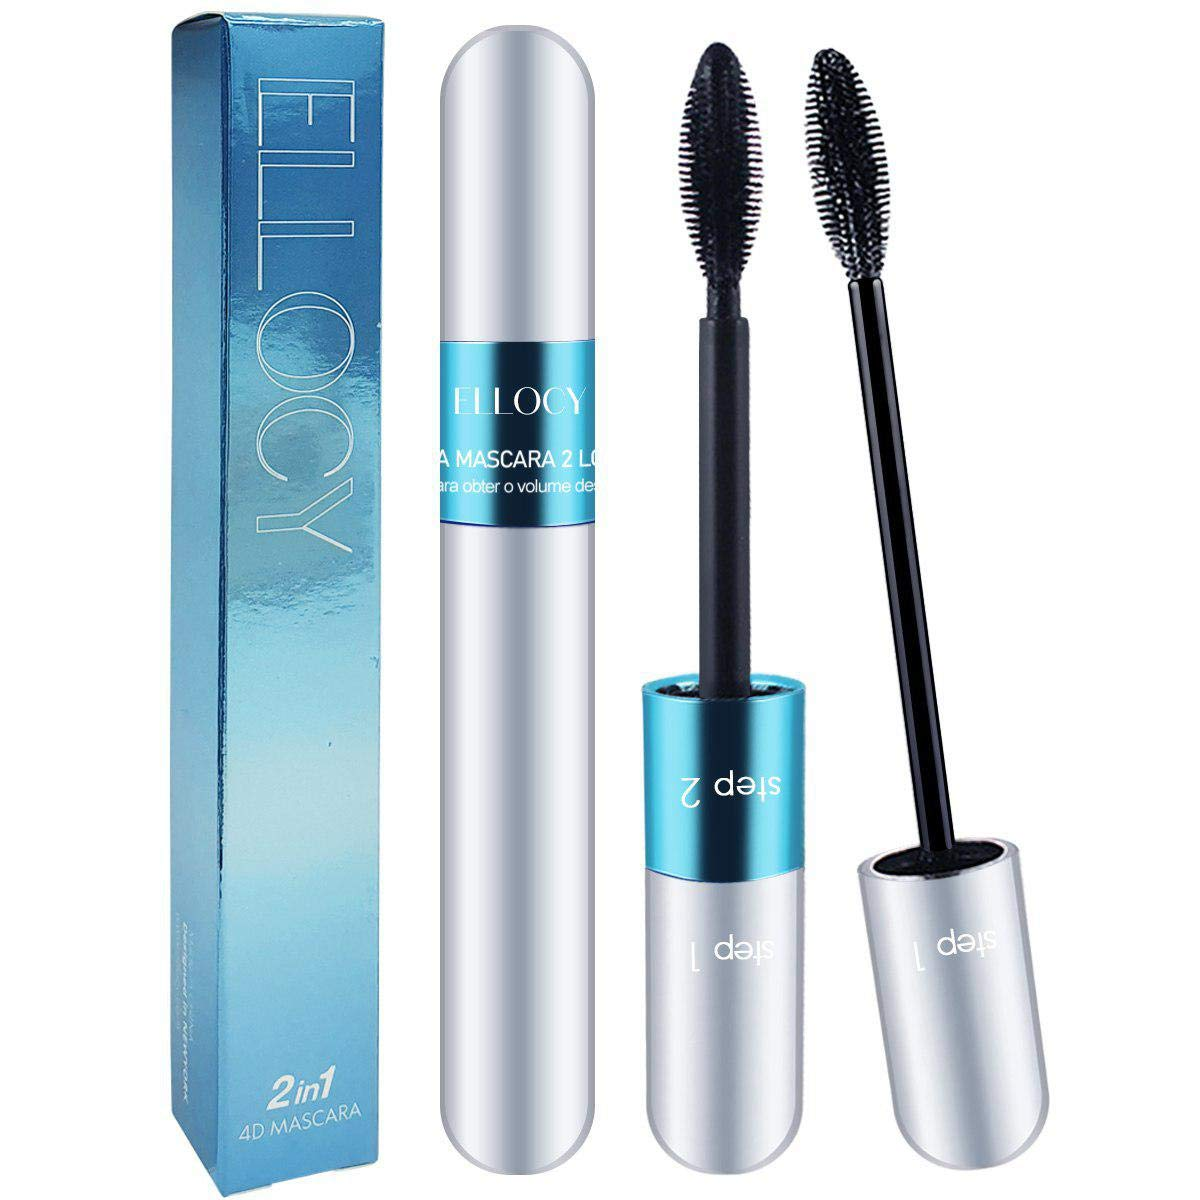 Ellocy 4D Silk Fiber Lash Mascara, 2 in 1 Mascara for Natural and Voluminous Look